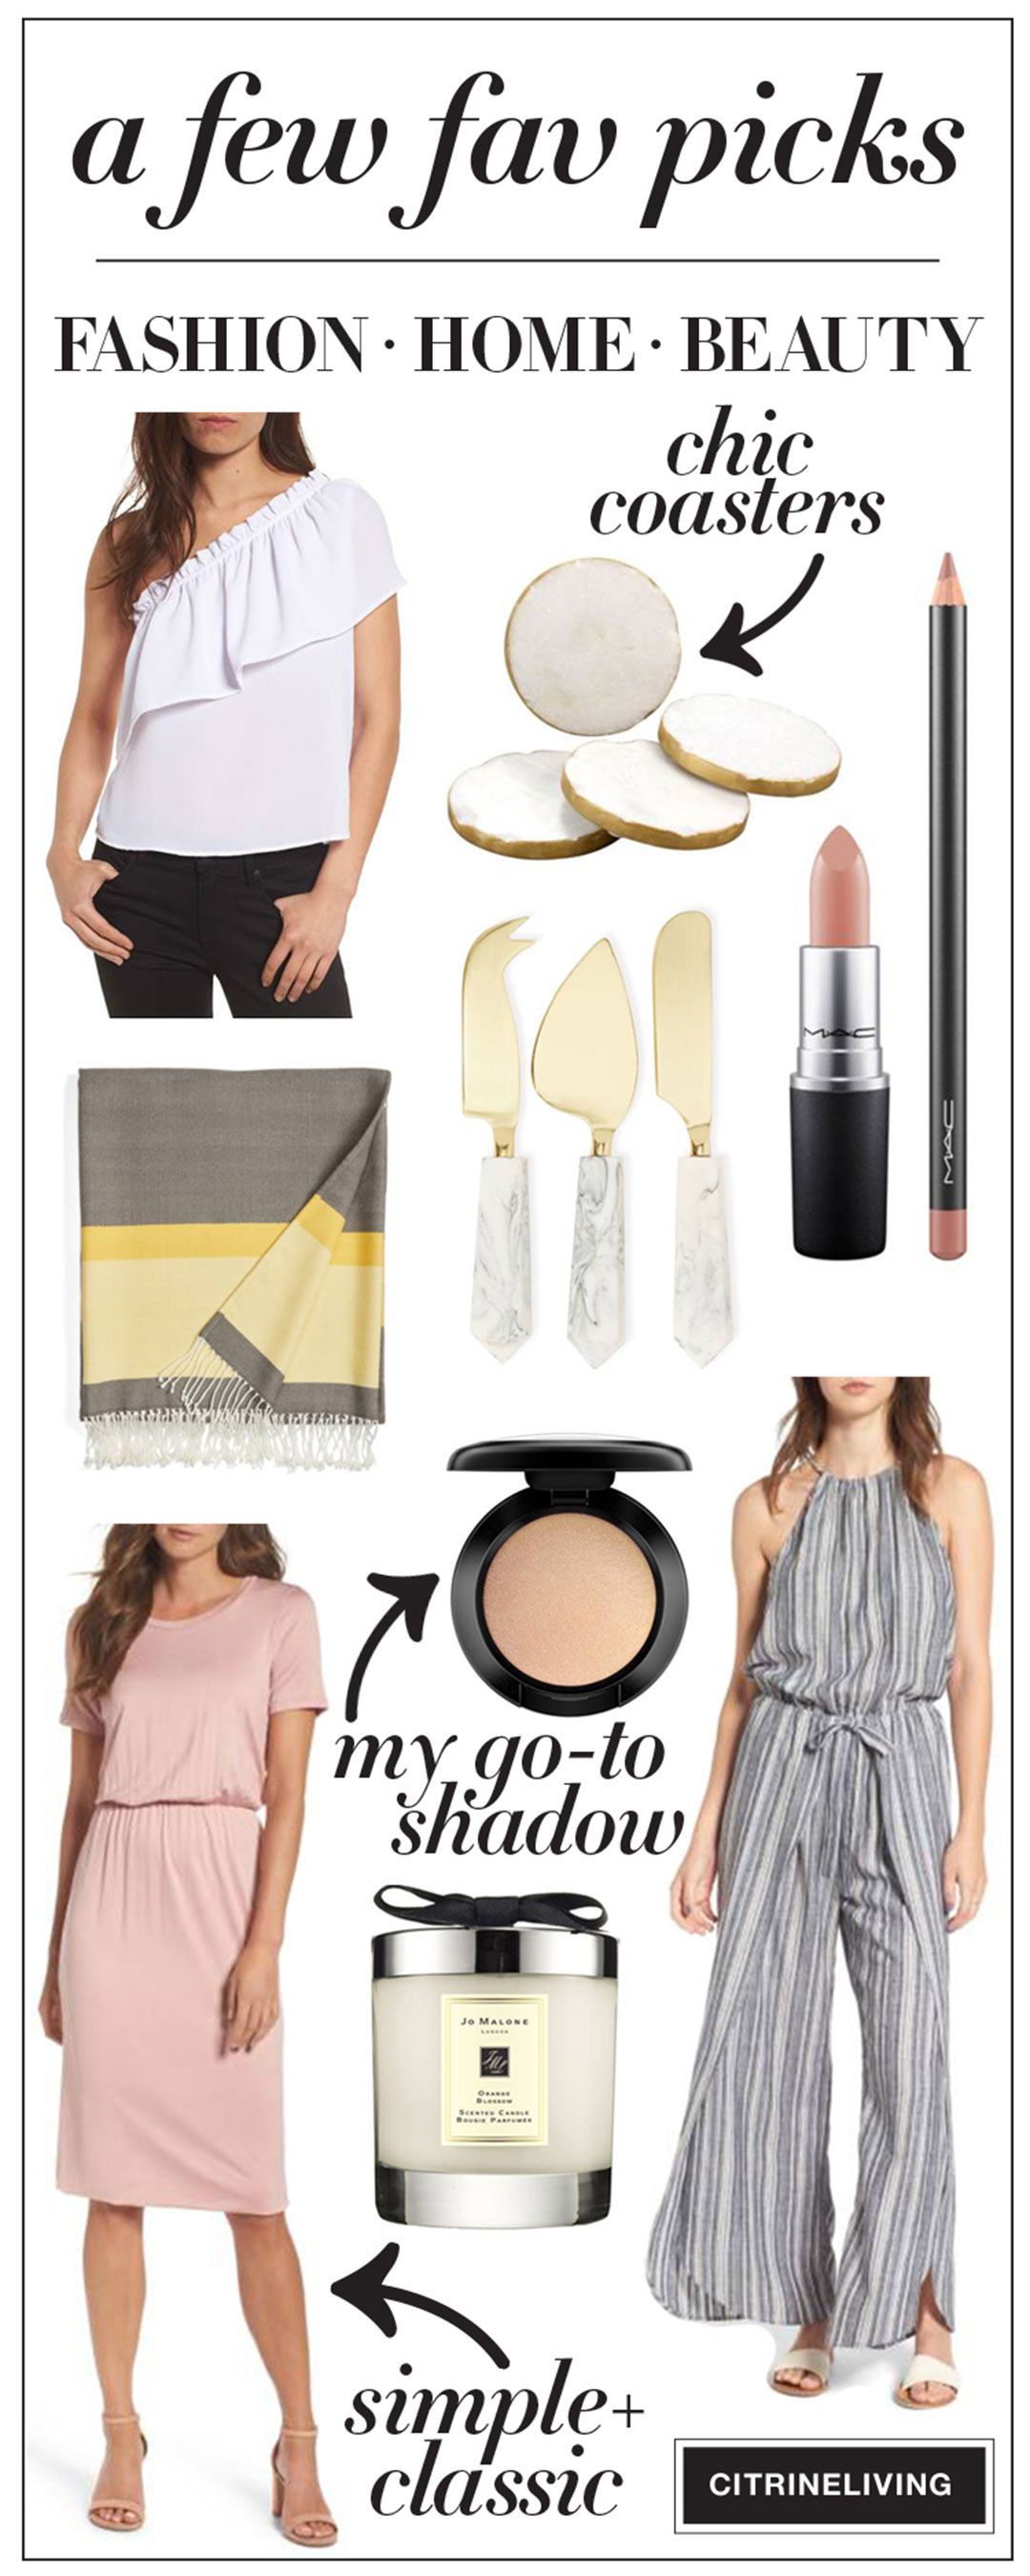 FASHION | HOME | BEAUTY | Sharing a few of my favs and and must-haves!!